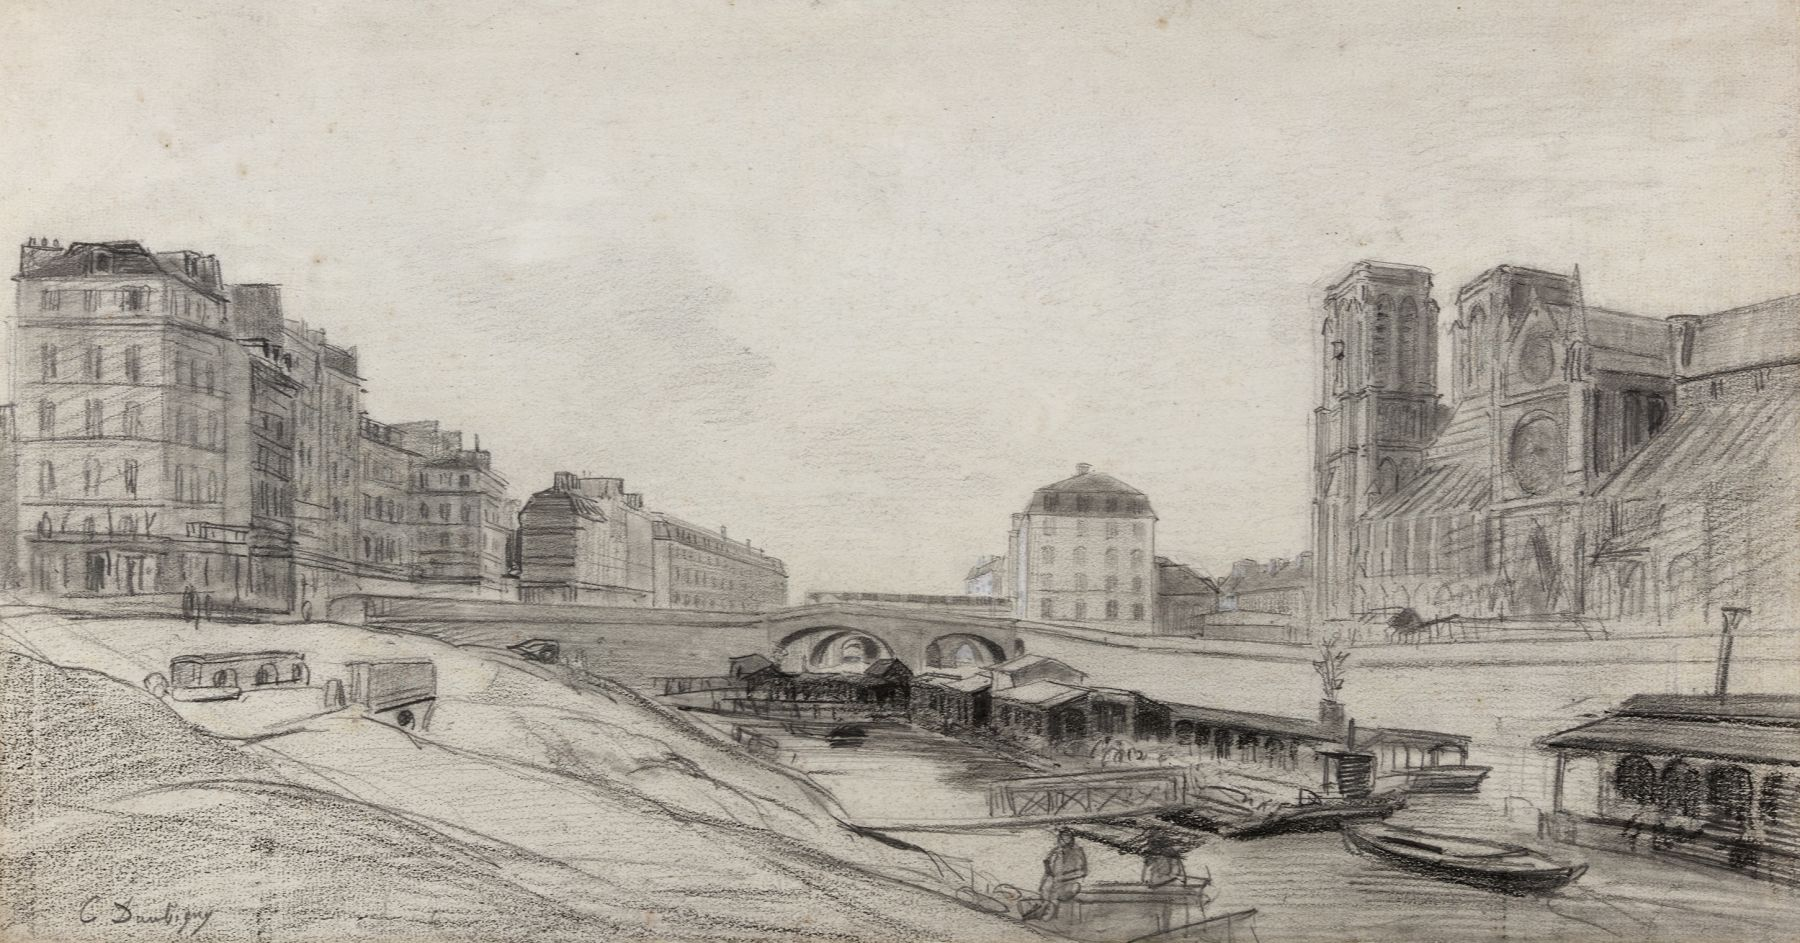 Charles Francois Daubigny, Pont au Double, Notre Dame, and Hôtel Dieu, c. 1840s,  Pencil with white heightening on paper 10 3/4 x 19 5/8 inches